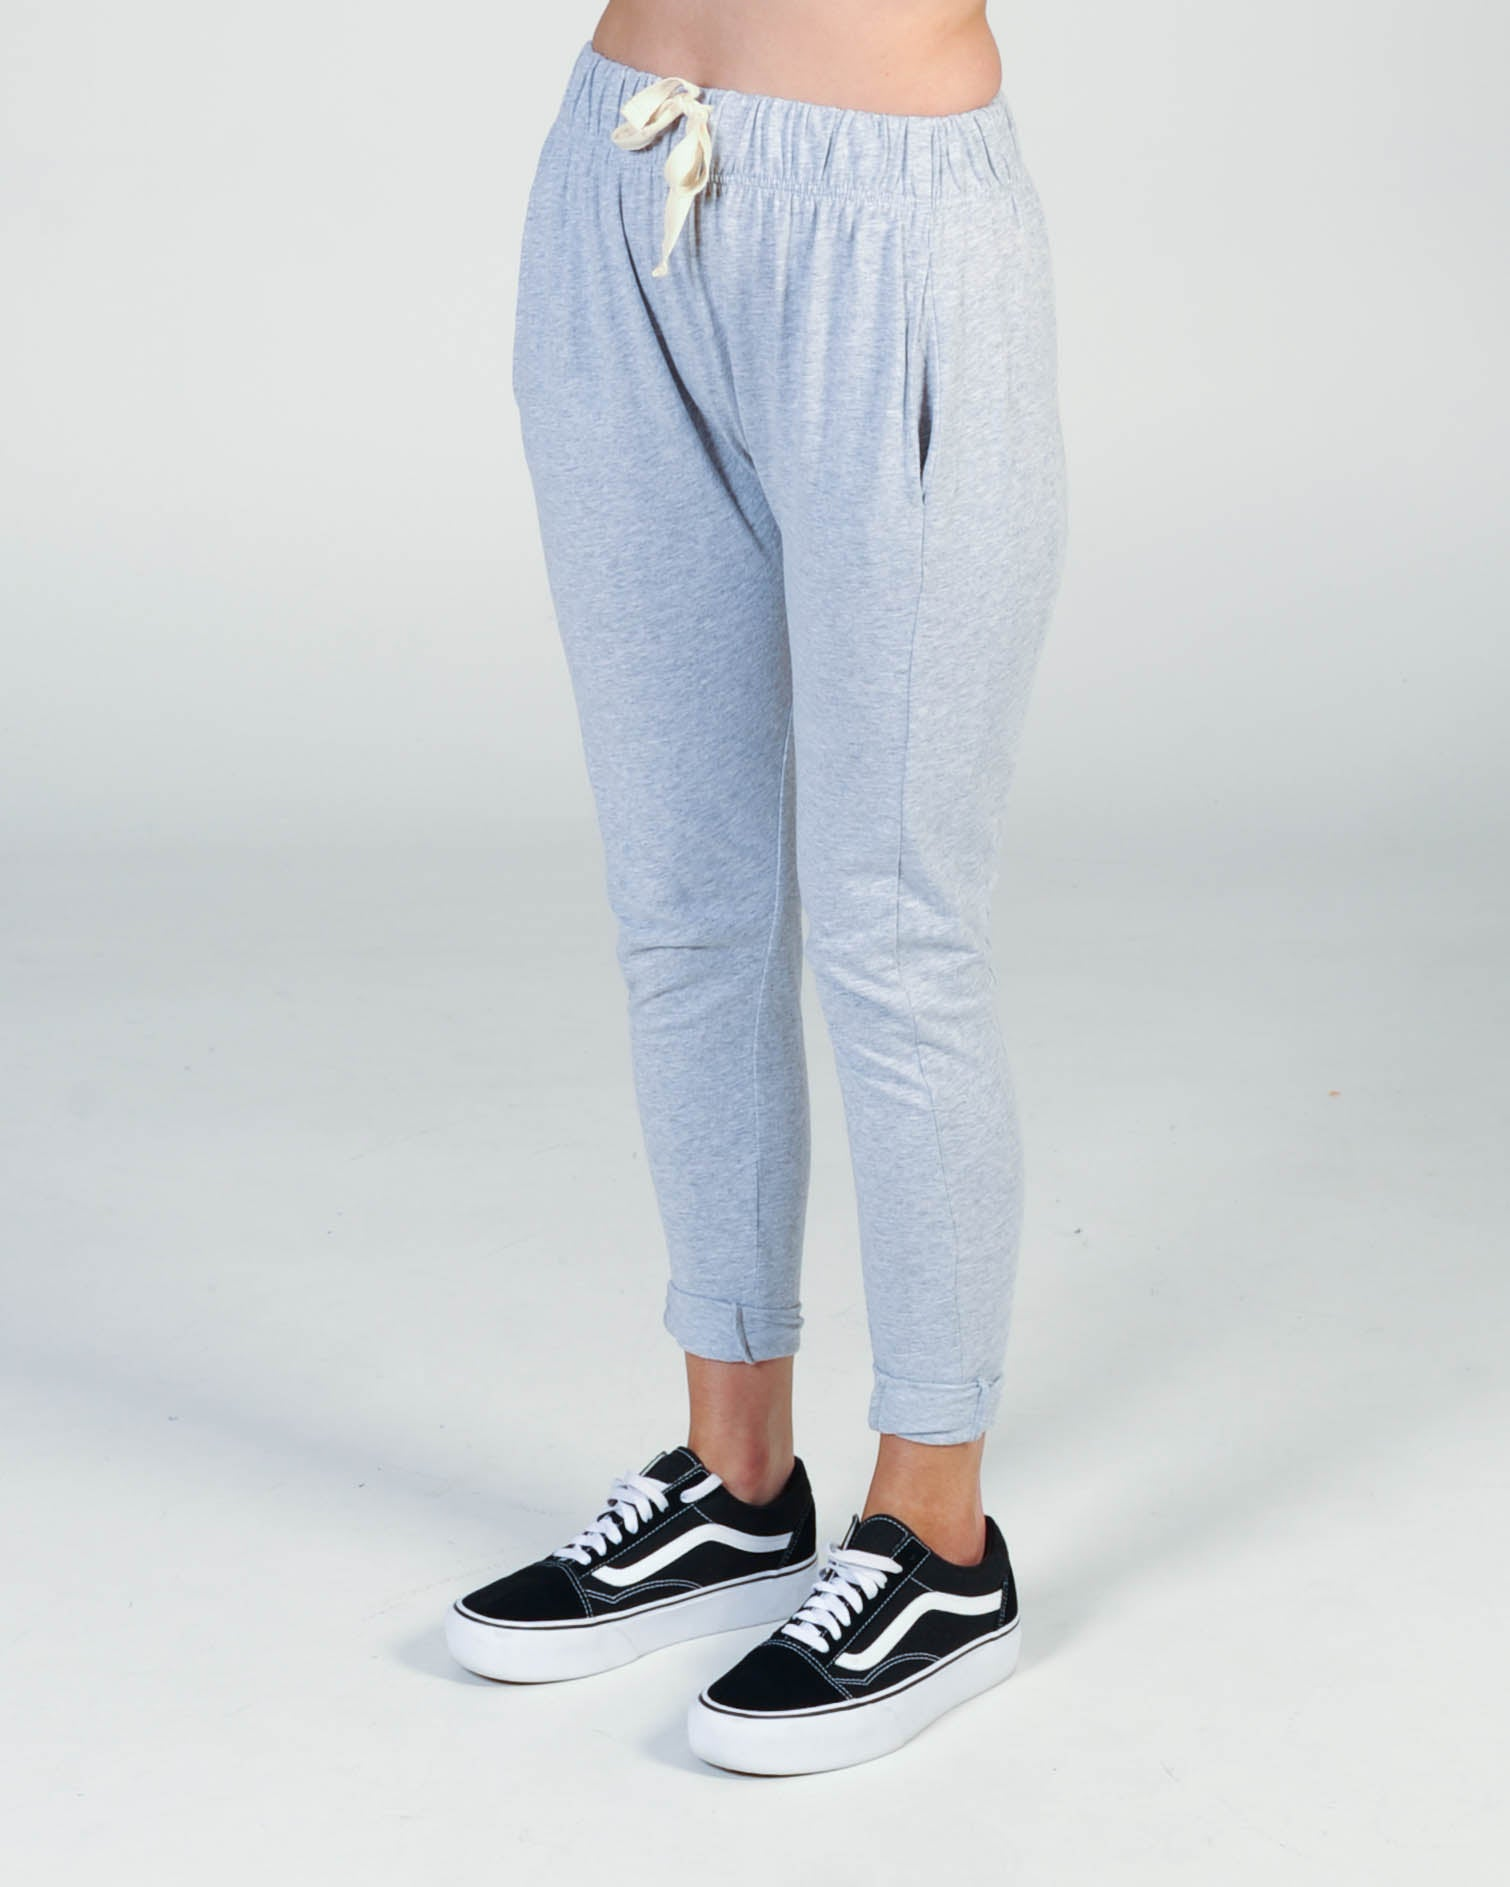 Silent Theory Fluid Pant - Grey Marle